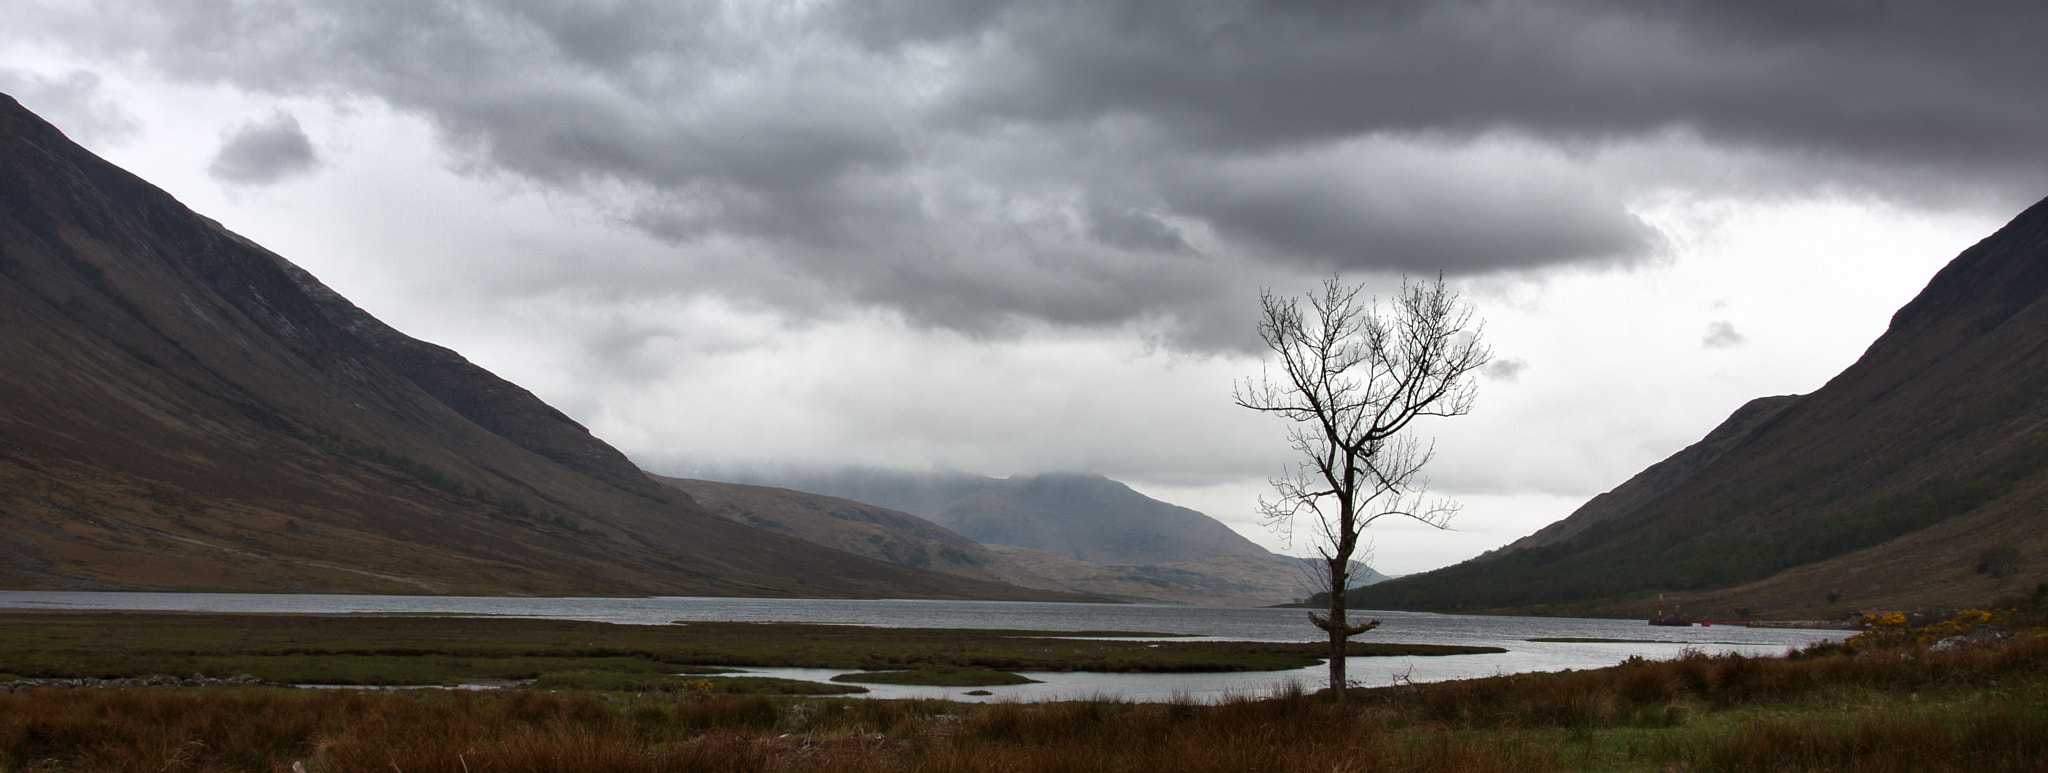 Photograph Loch Etive by Will Delves on 500px